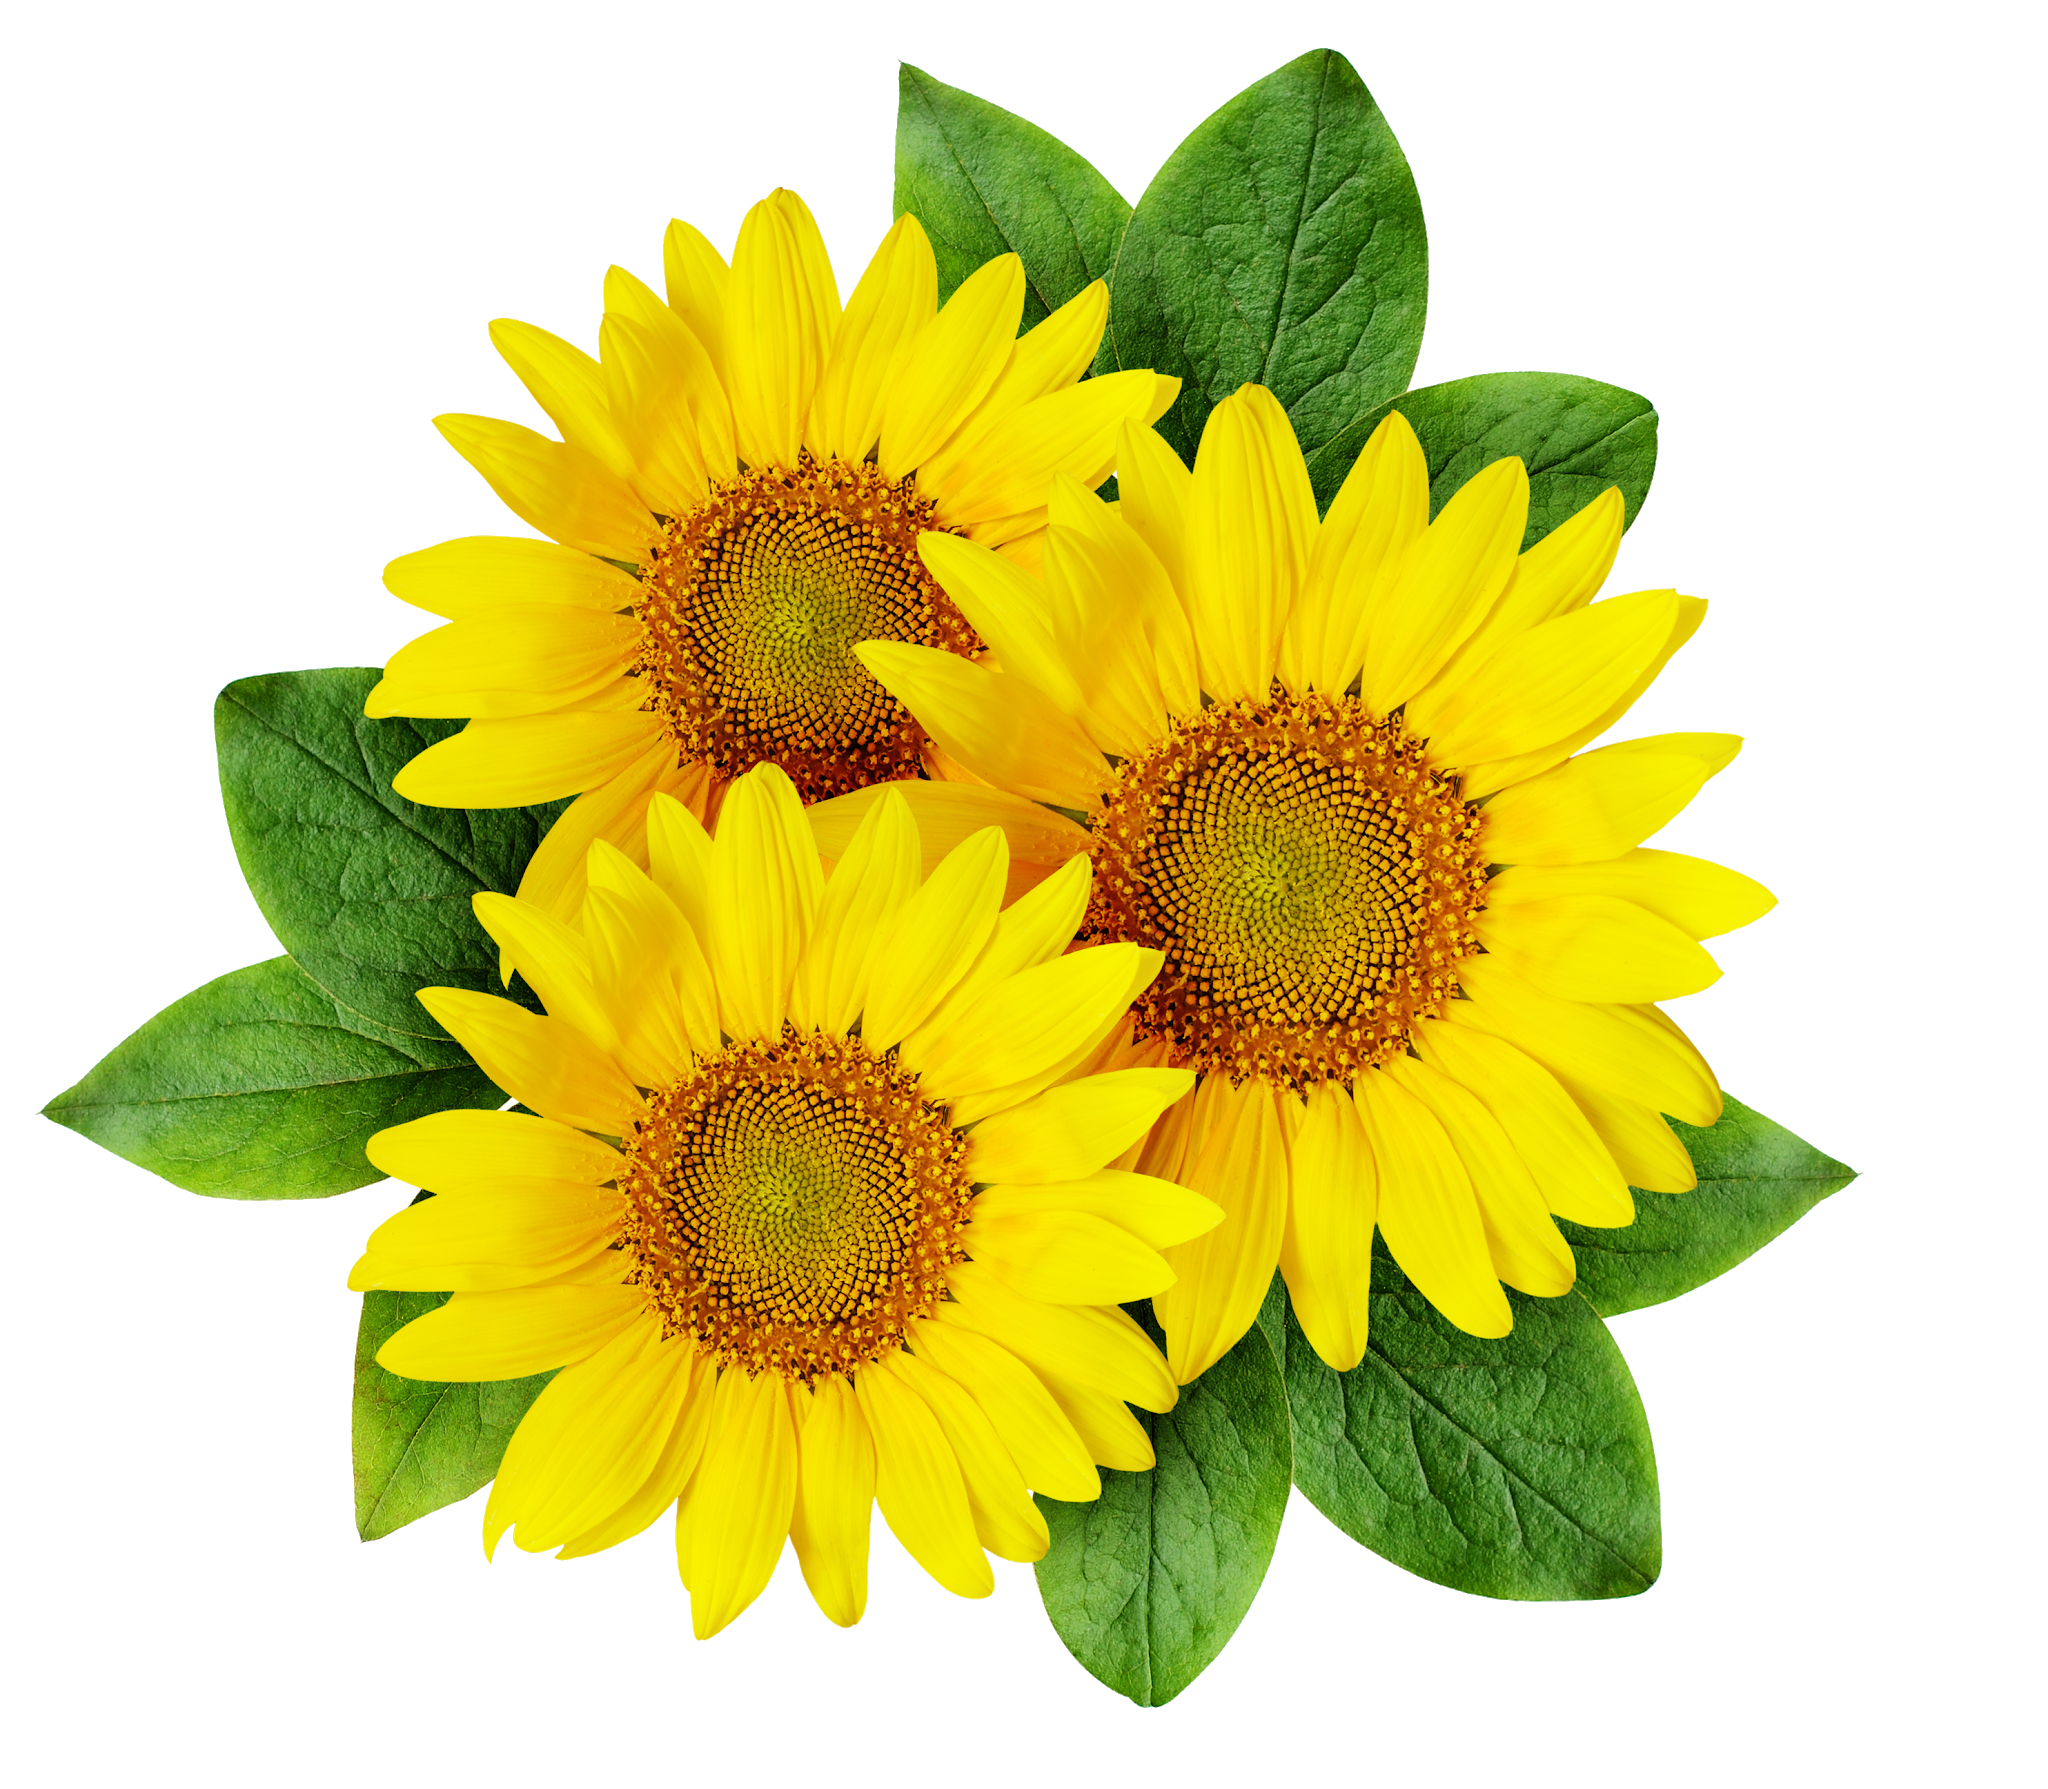 Common sunflower Drawing Illustration Colourful